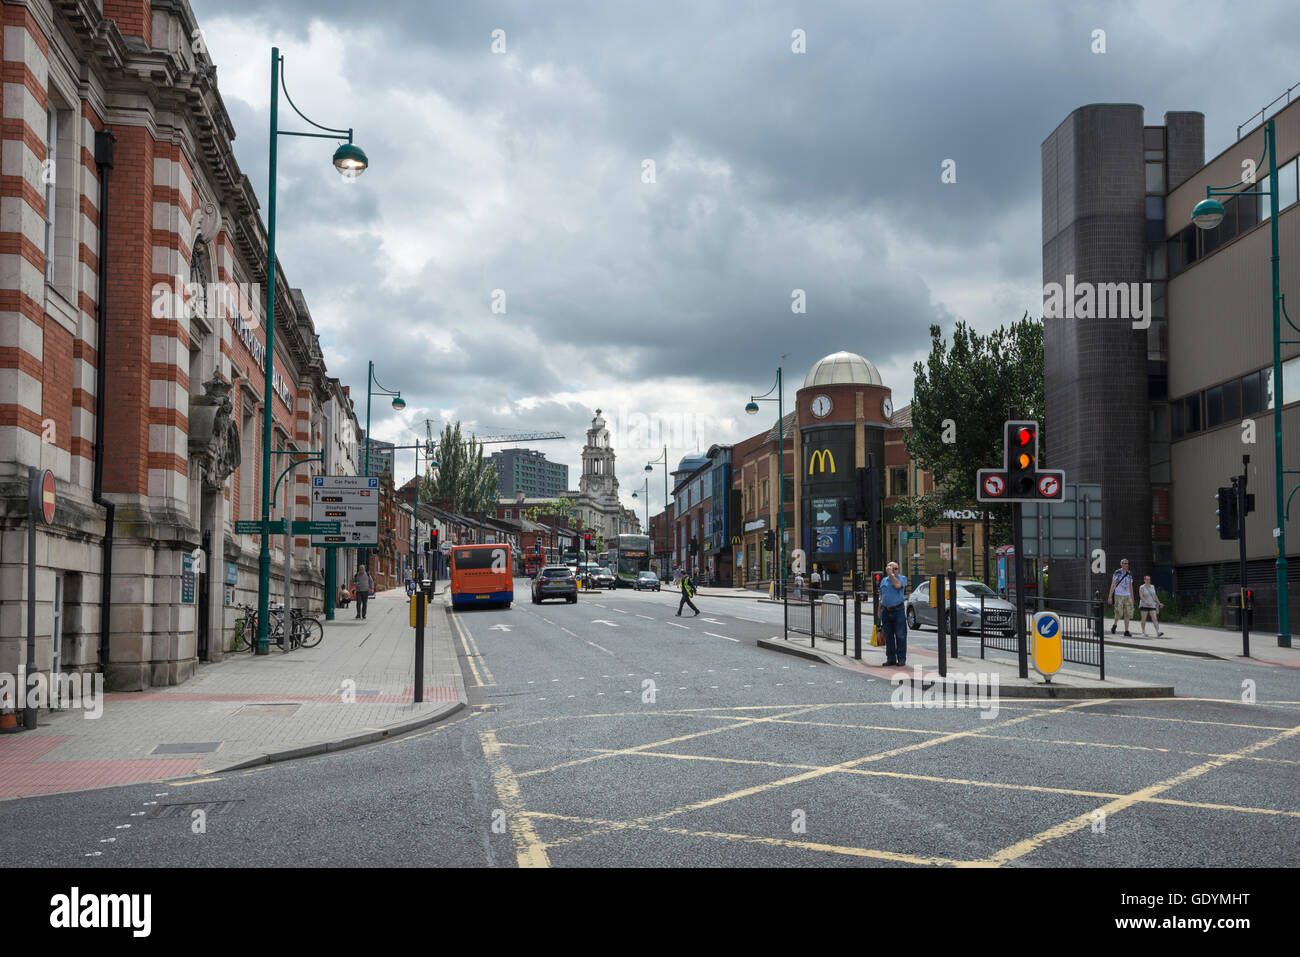 Road junction on the A6 in the town of Stockport, Greater Manchester. Stockport library, royal mail and town hall. - Stock Image